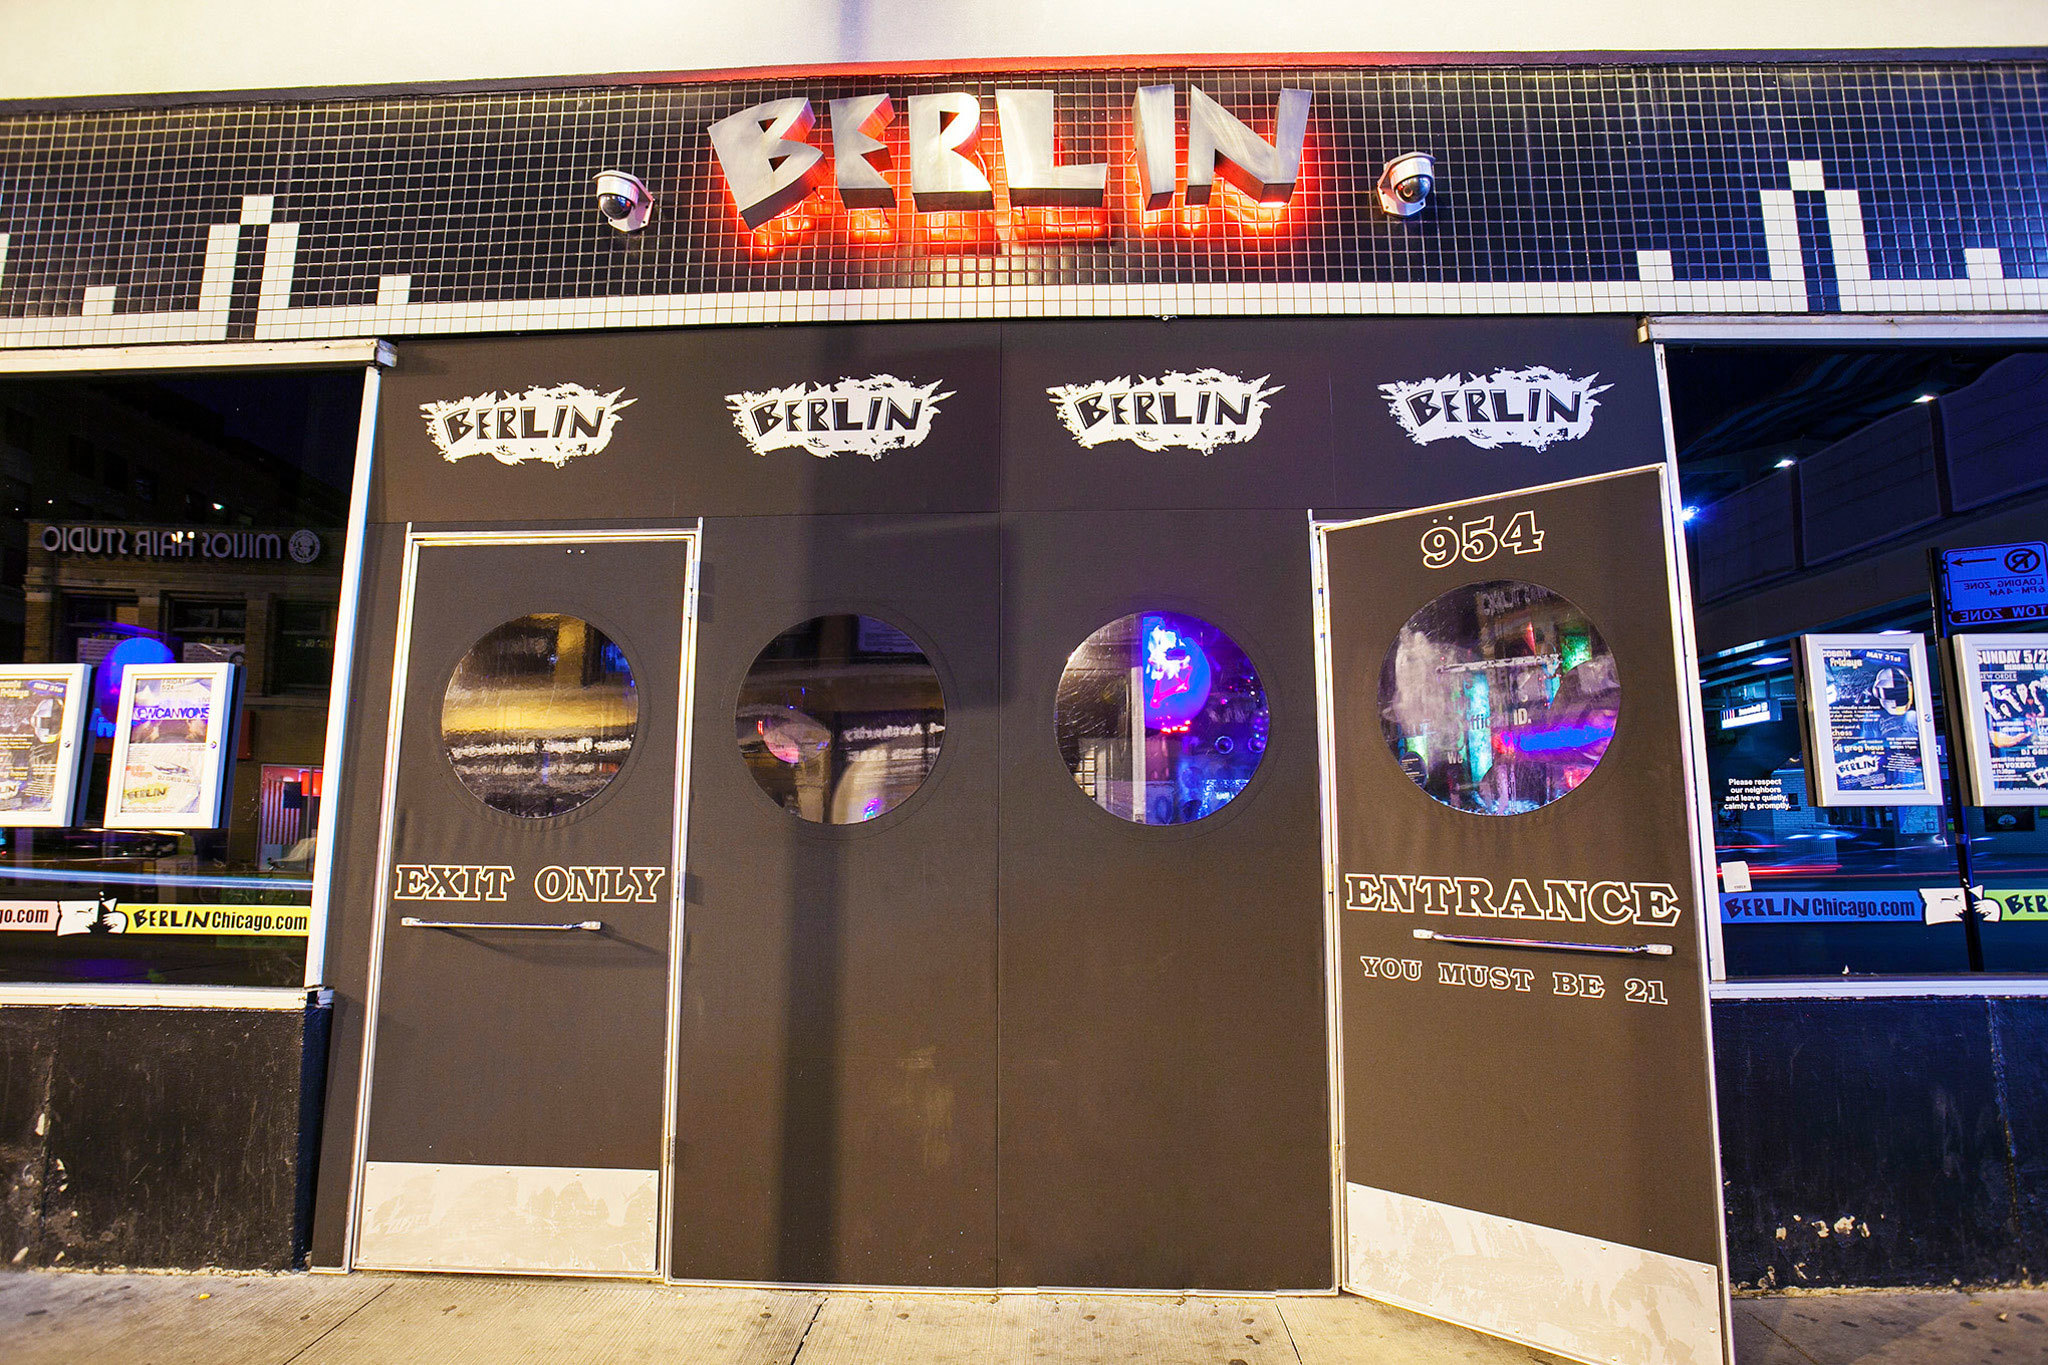 0913.chi.cl.bestDanceParty.Berlin.jpg